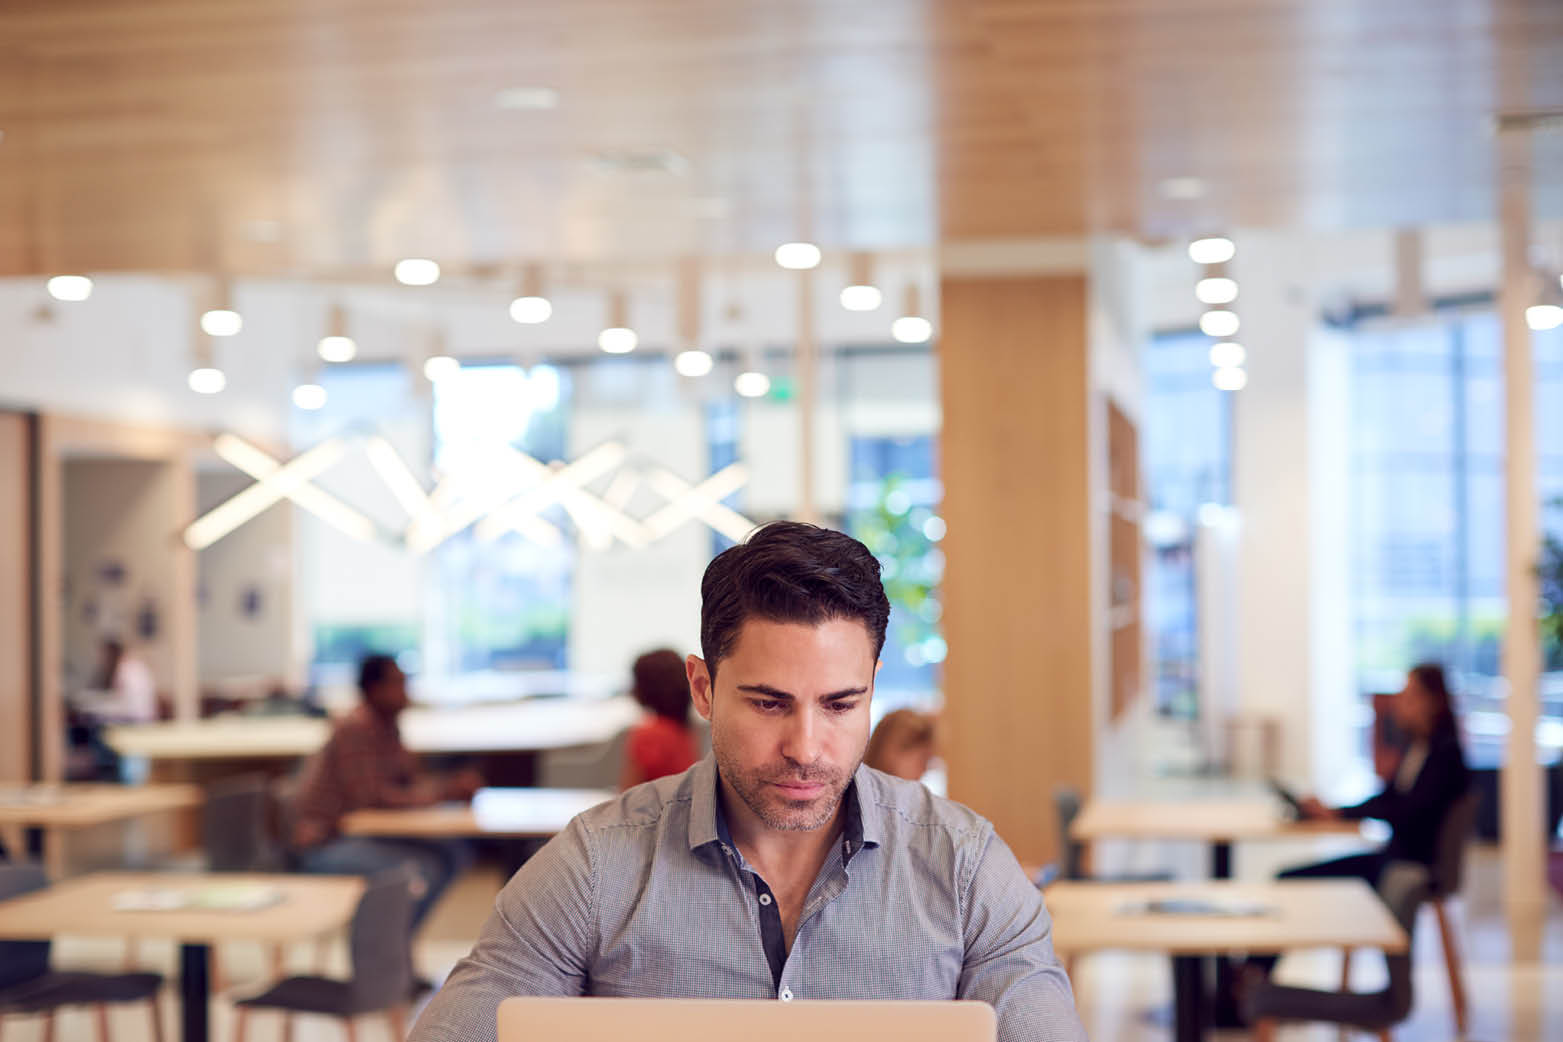 Office worker working in office representing commercial subleasing agreement